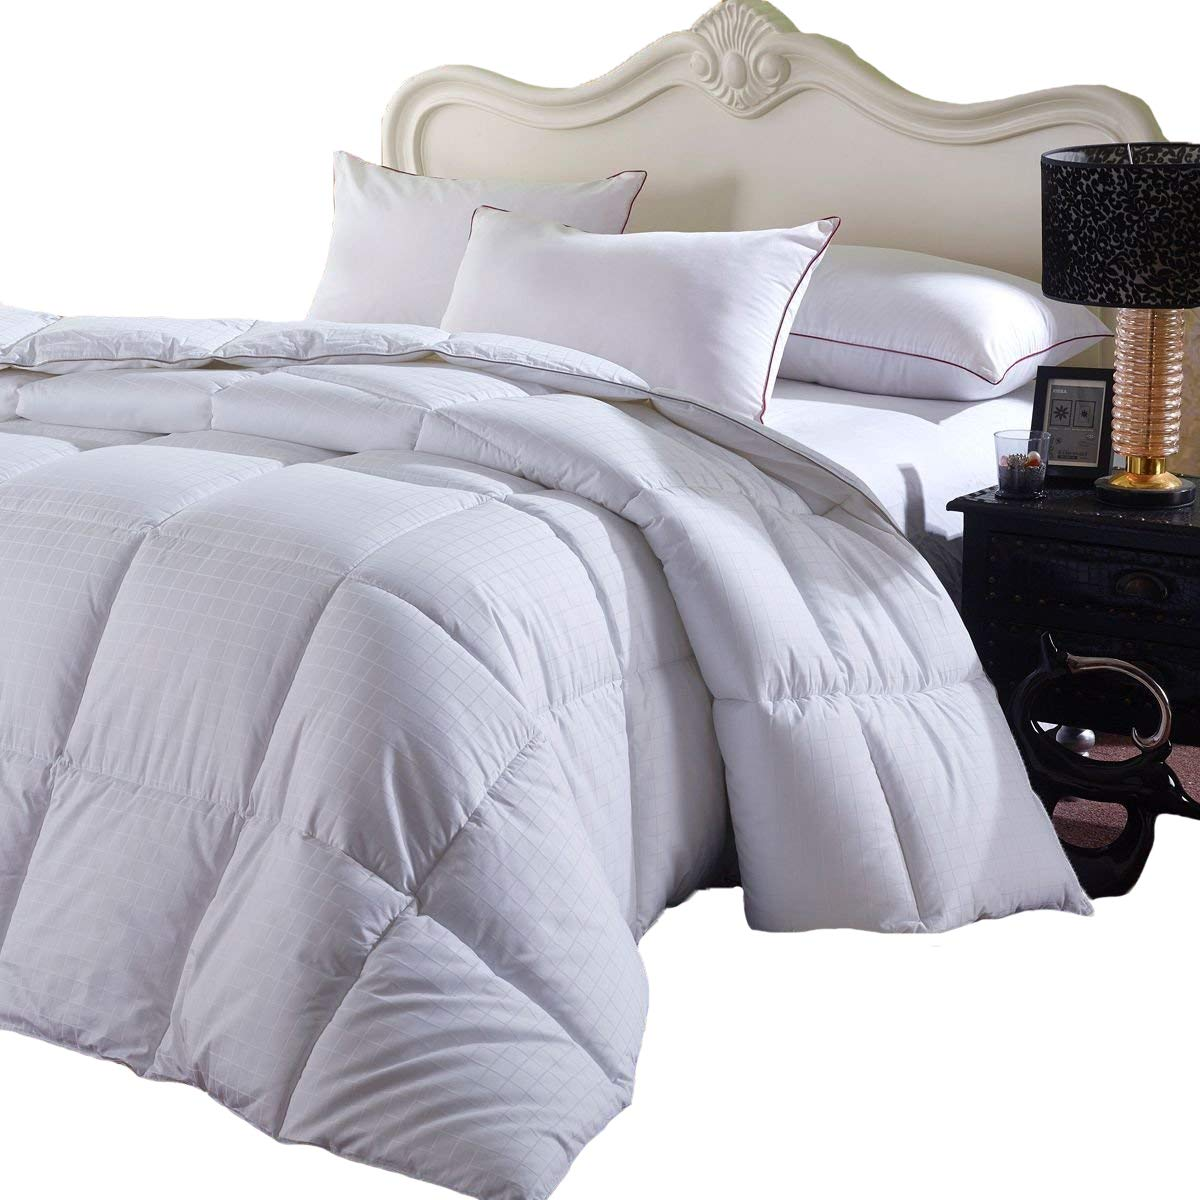 Royal Hotel's Overfilled Dobby Down Alternative Comforter, Twin / Twin-Extra-Long Size, Checkered White, 100% Cotton Shell 300 TC - 65 OZ Fill -750+FP